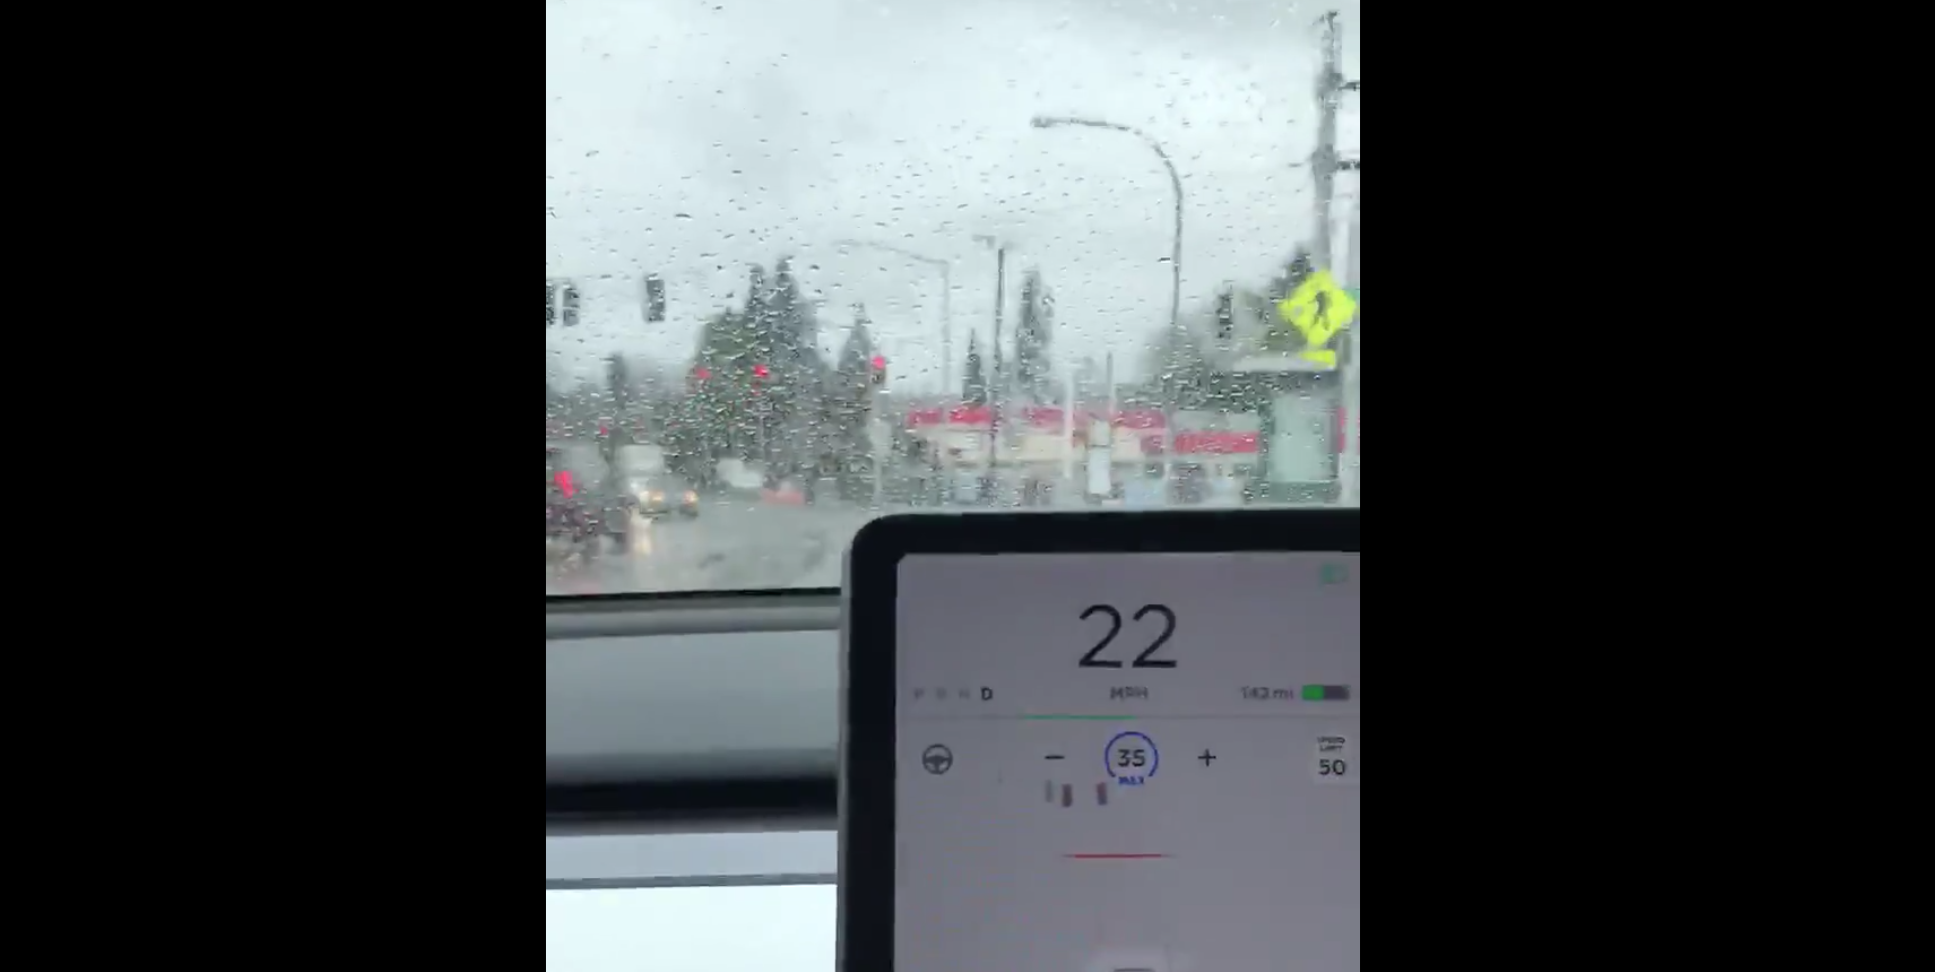 Video Shows Tesla Autopilot Stopping a Model 3 at a Stoplight